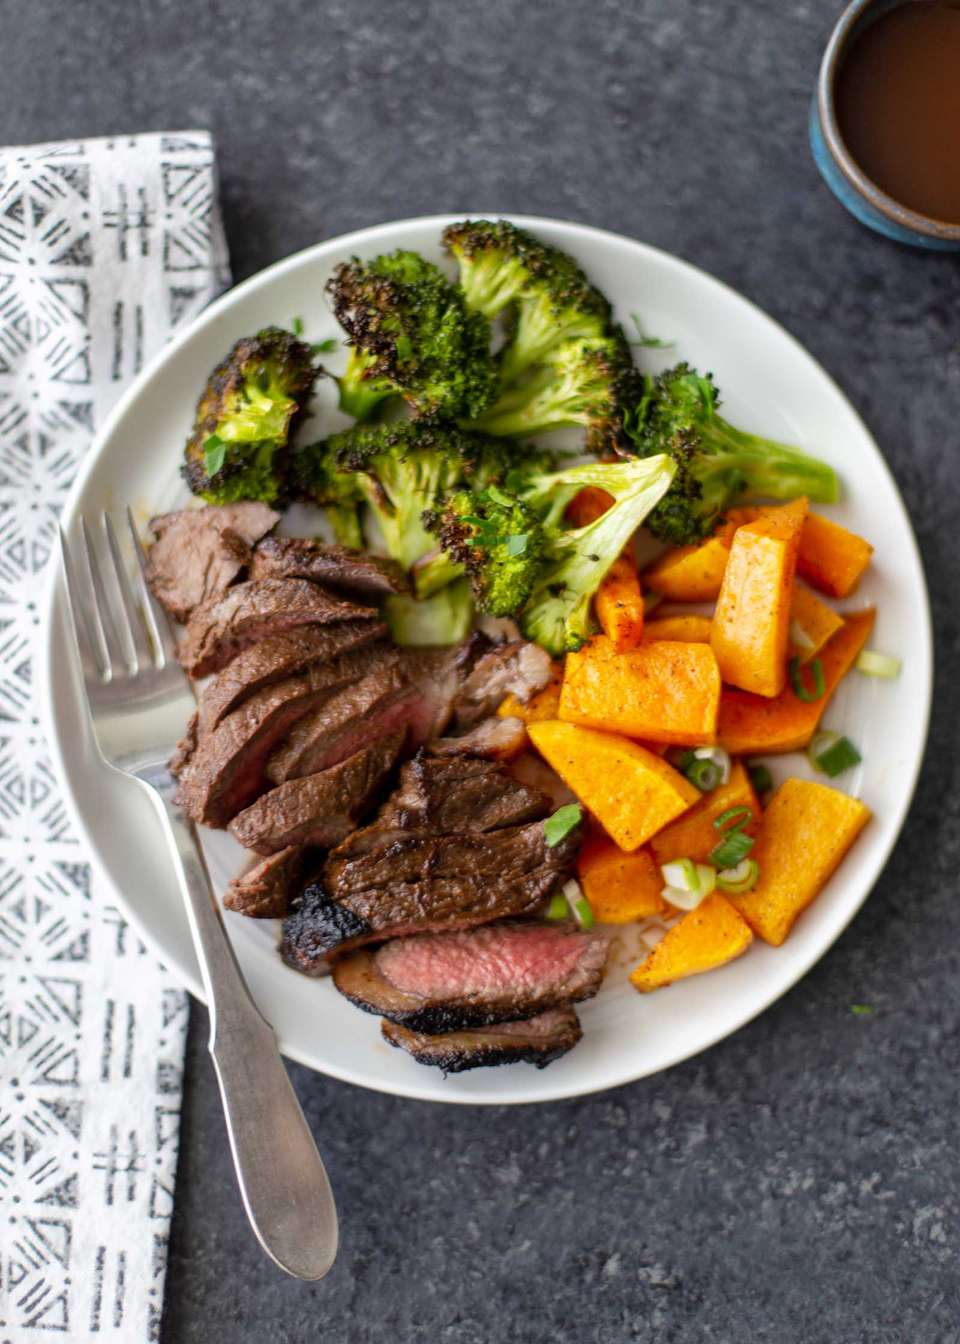 Sliced steak cooked in the stove on a white plate with seared edges and pink middle. Roasted broccoli and squash are on the plate.